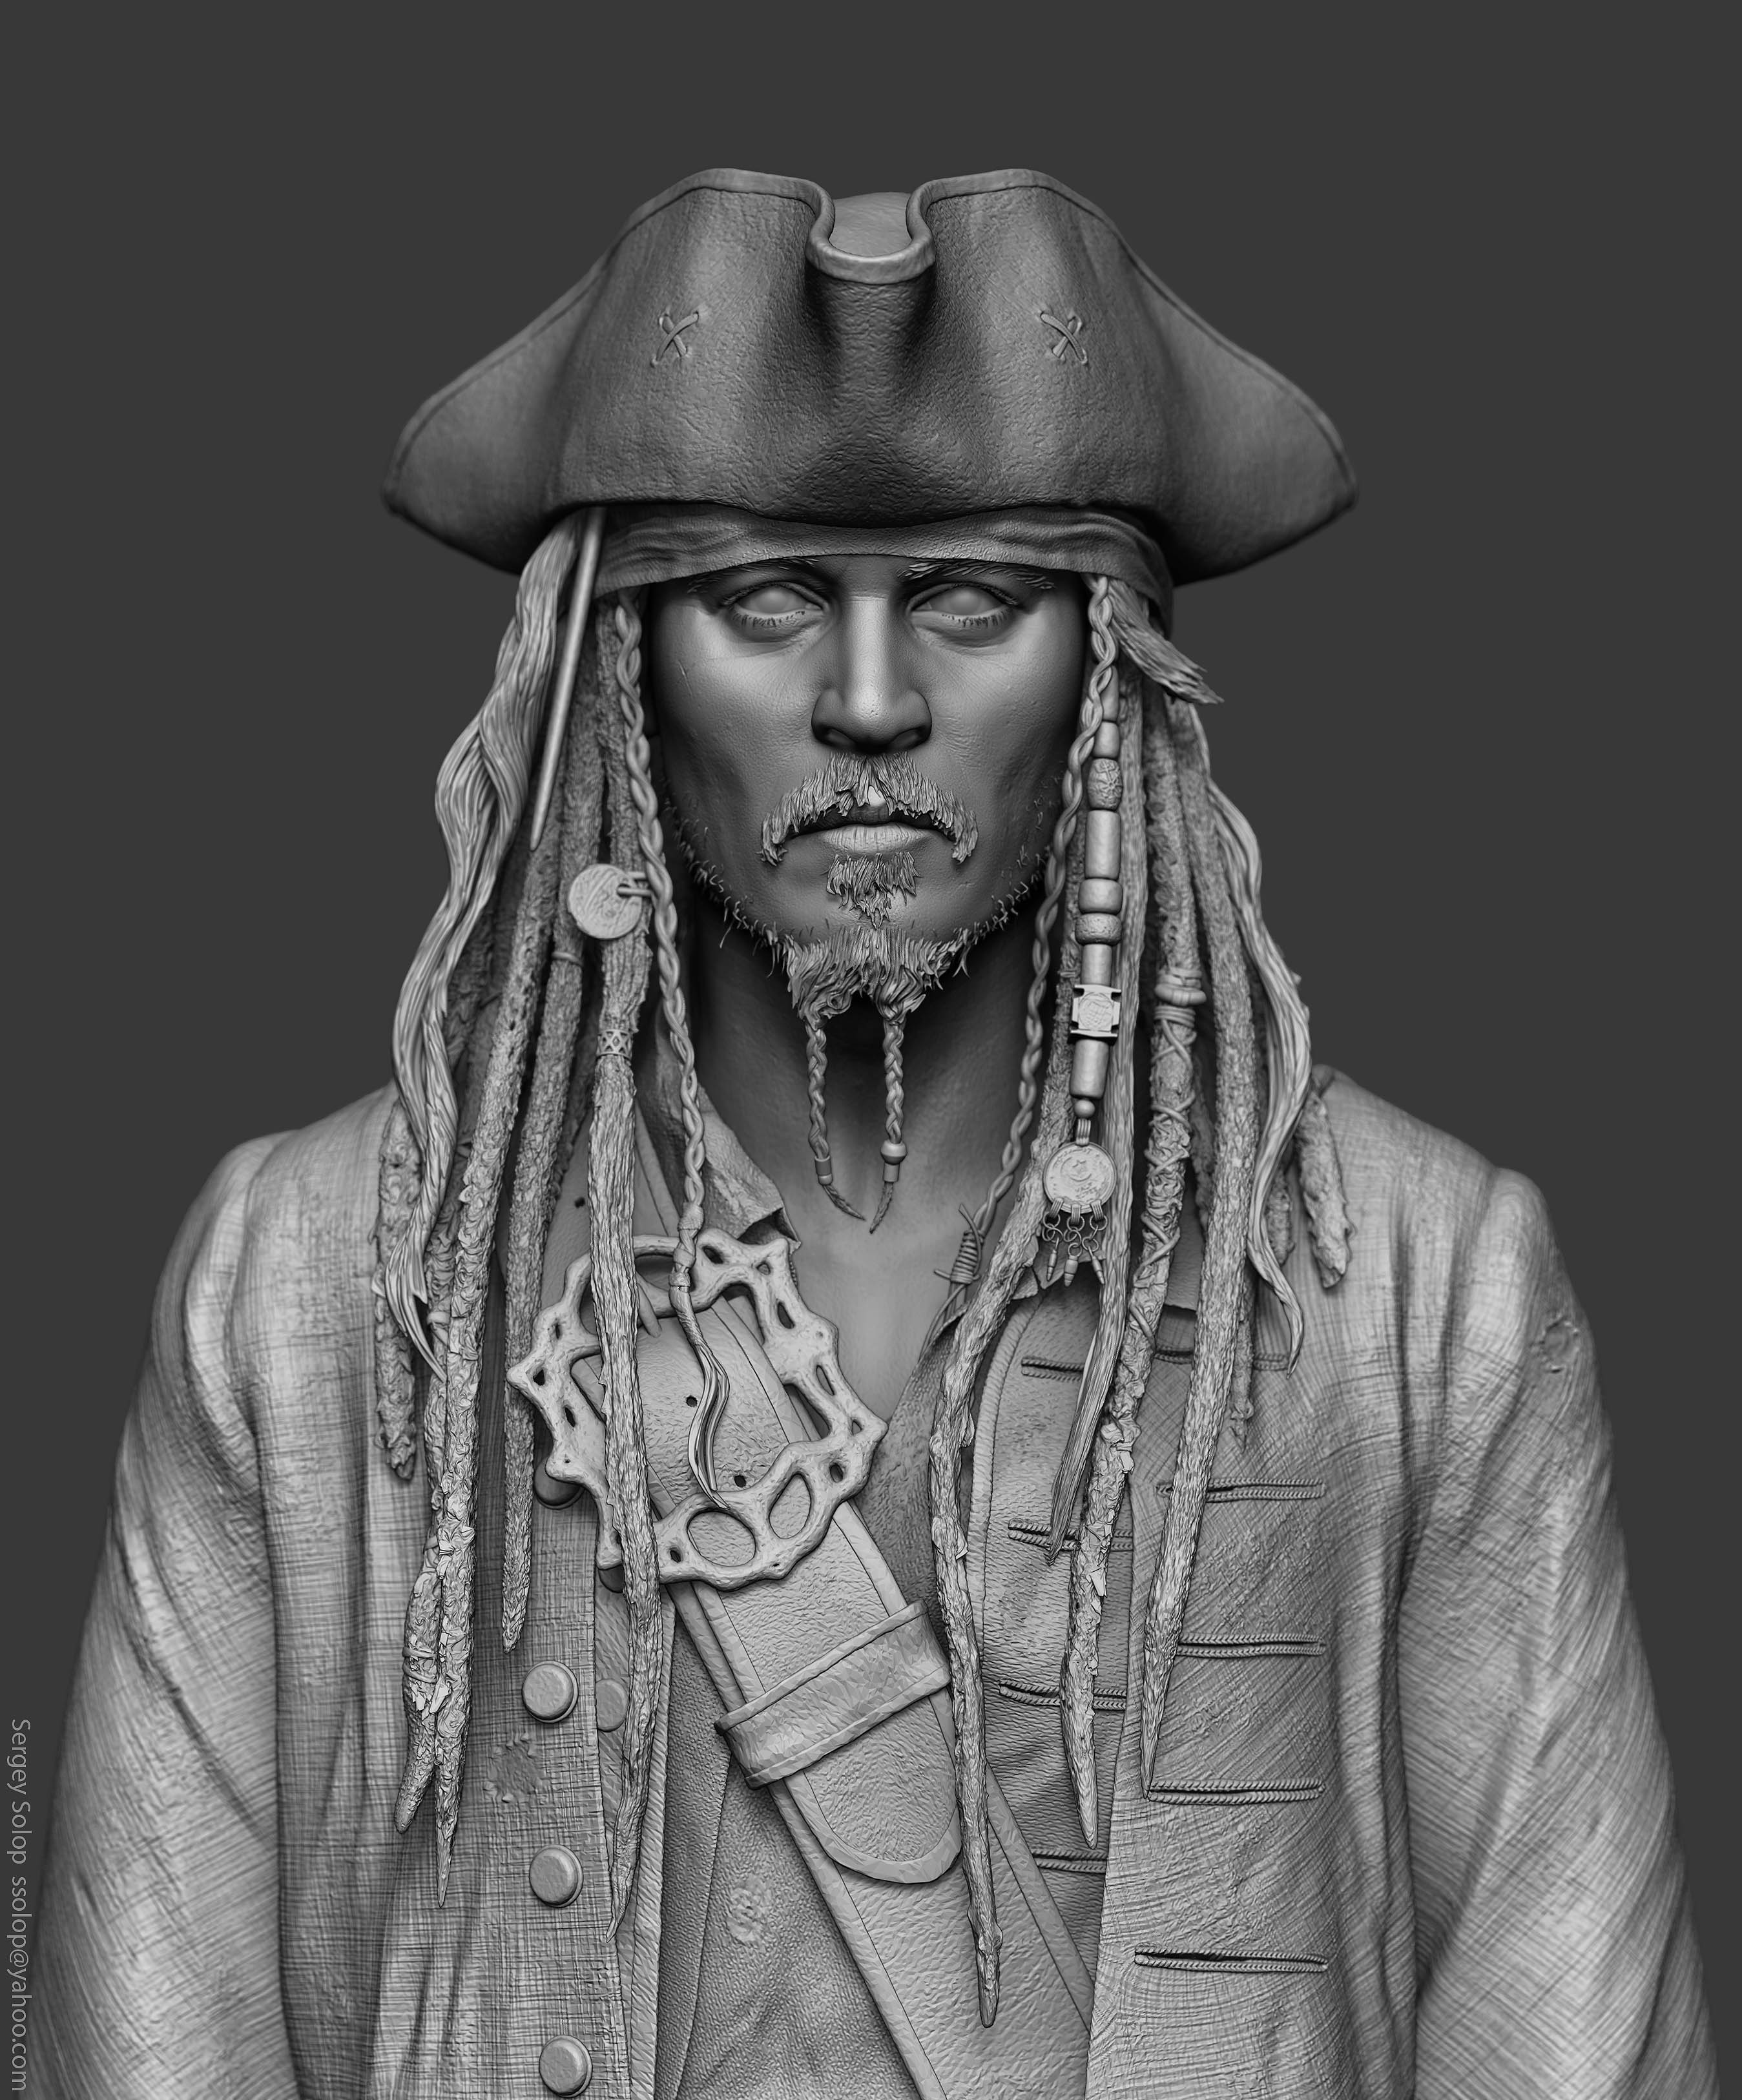 sergey-solop-jack-sparrow-pirates-of-the-caribbean-wip-12.jpg